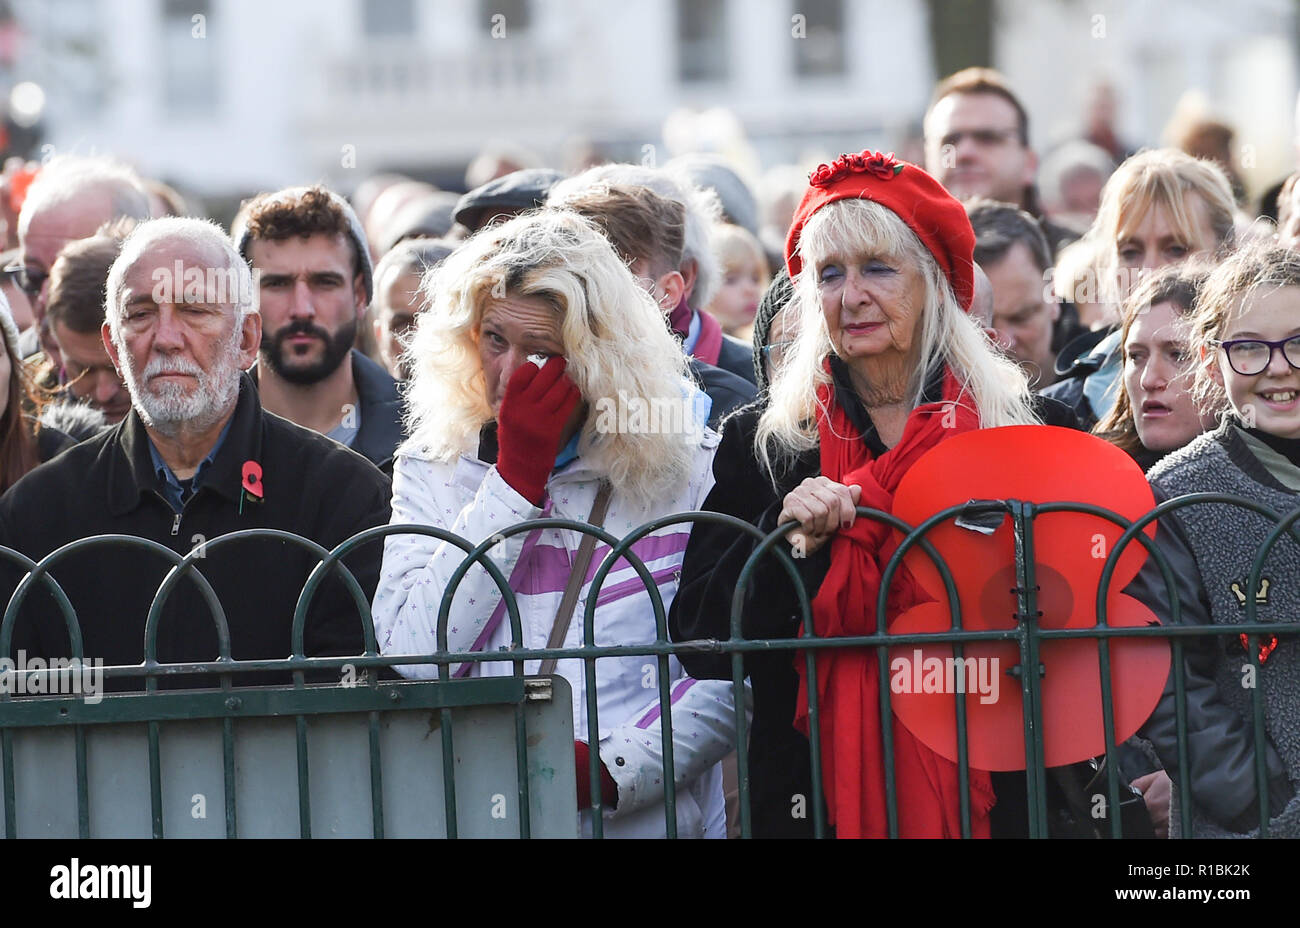 Brighton UK 11th November 2018 - Emotional moments at the Act of Remembrance Service held at Brighton war memorial . It is the 100 year anniversary today of the ending of World War One on the 11th November 1918 . Photograph taken by Simon Dack Credit: Simon Dack/Alamy Live News - Stock Image